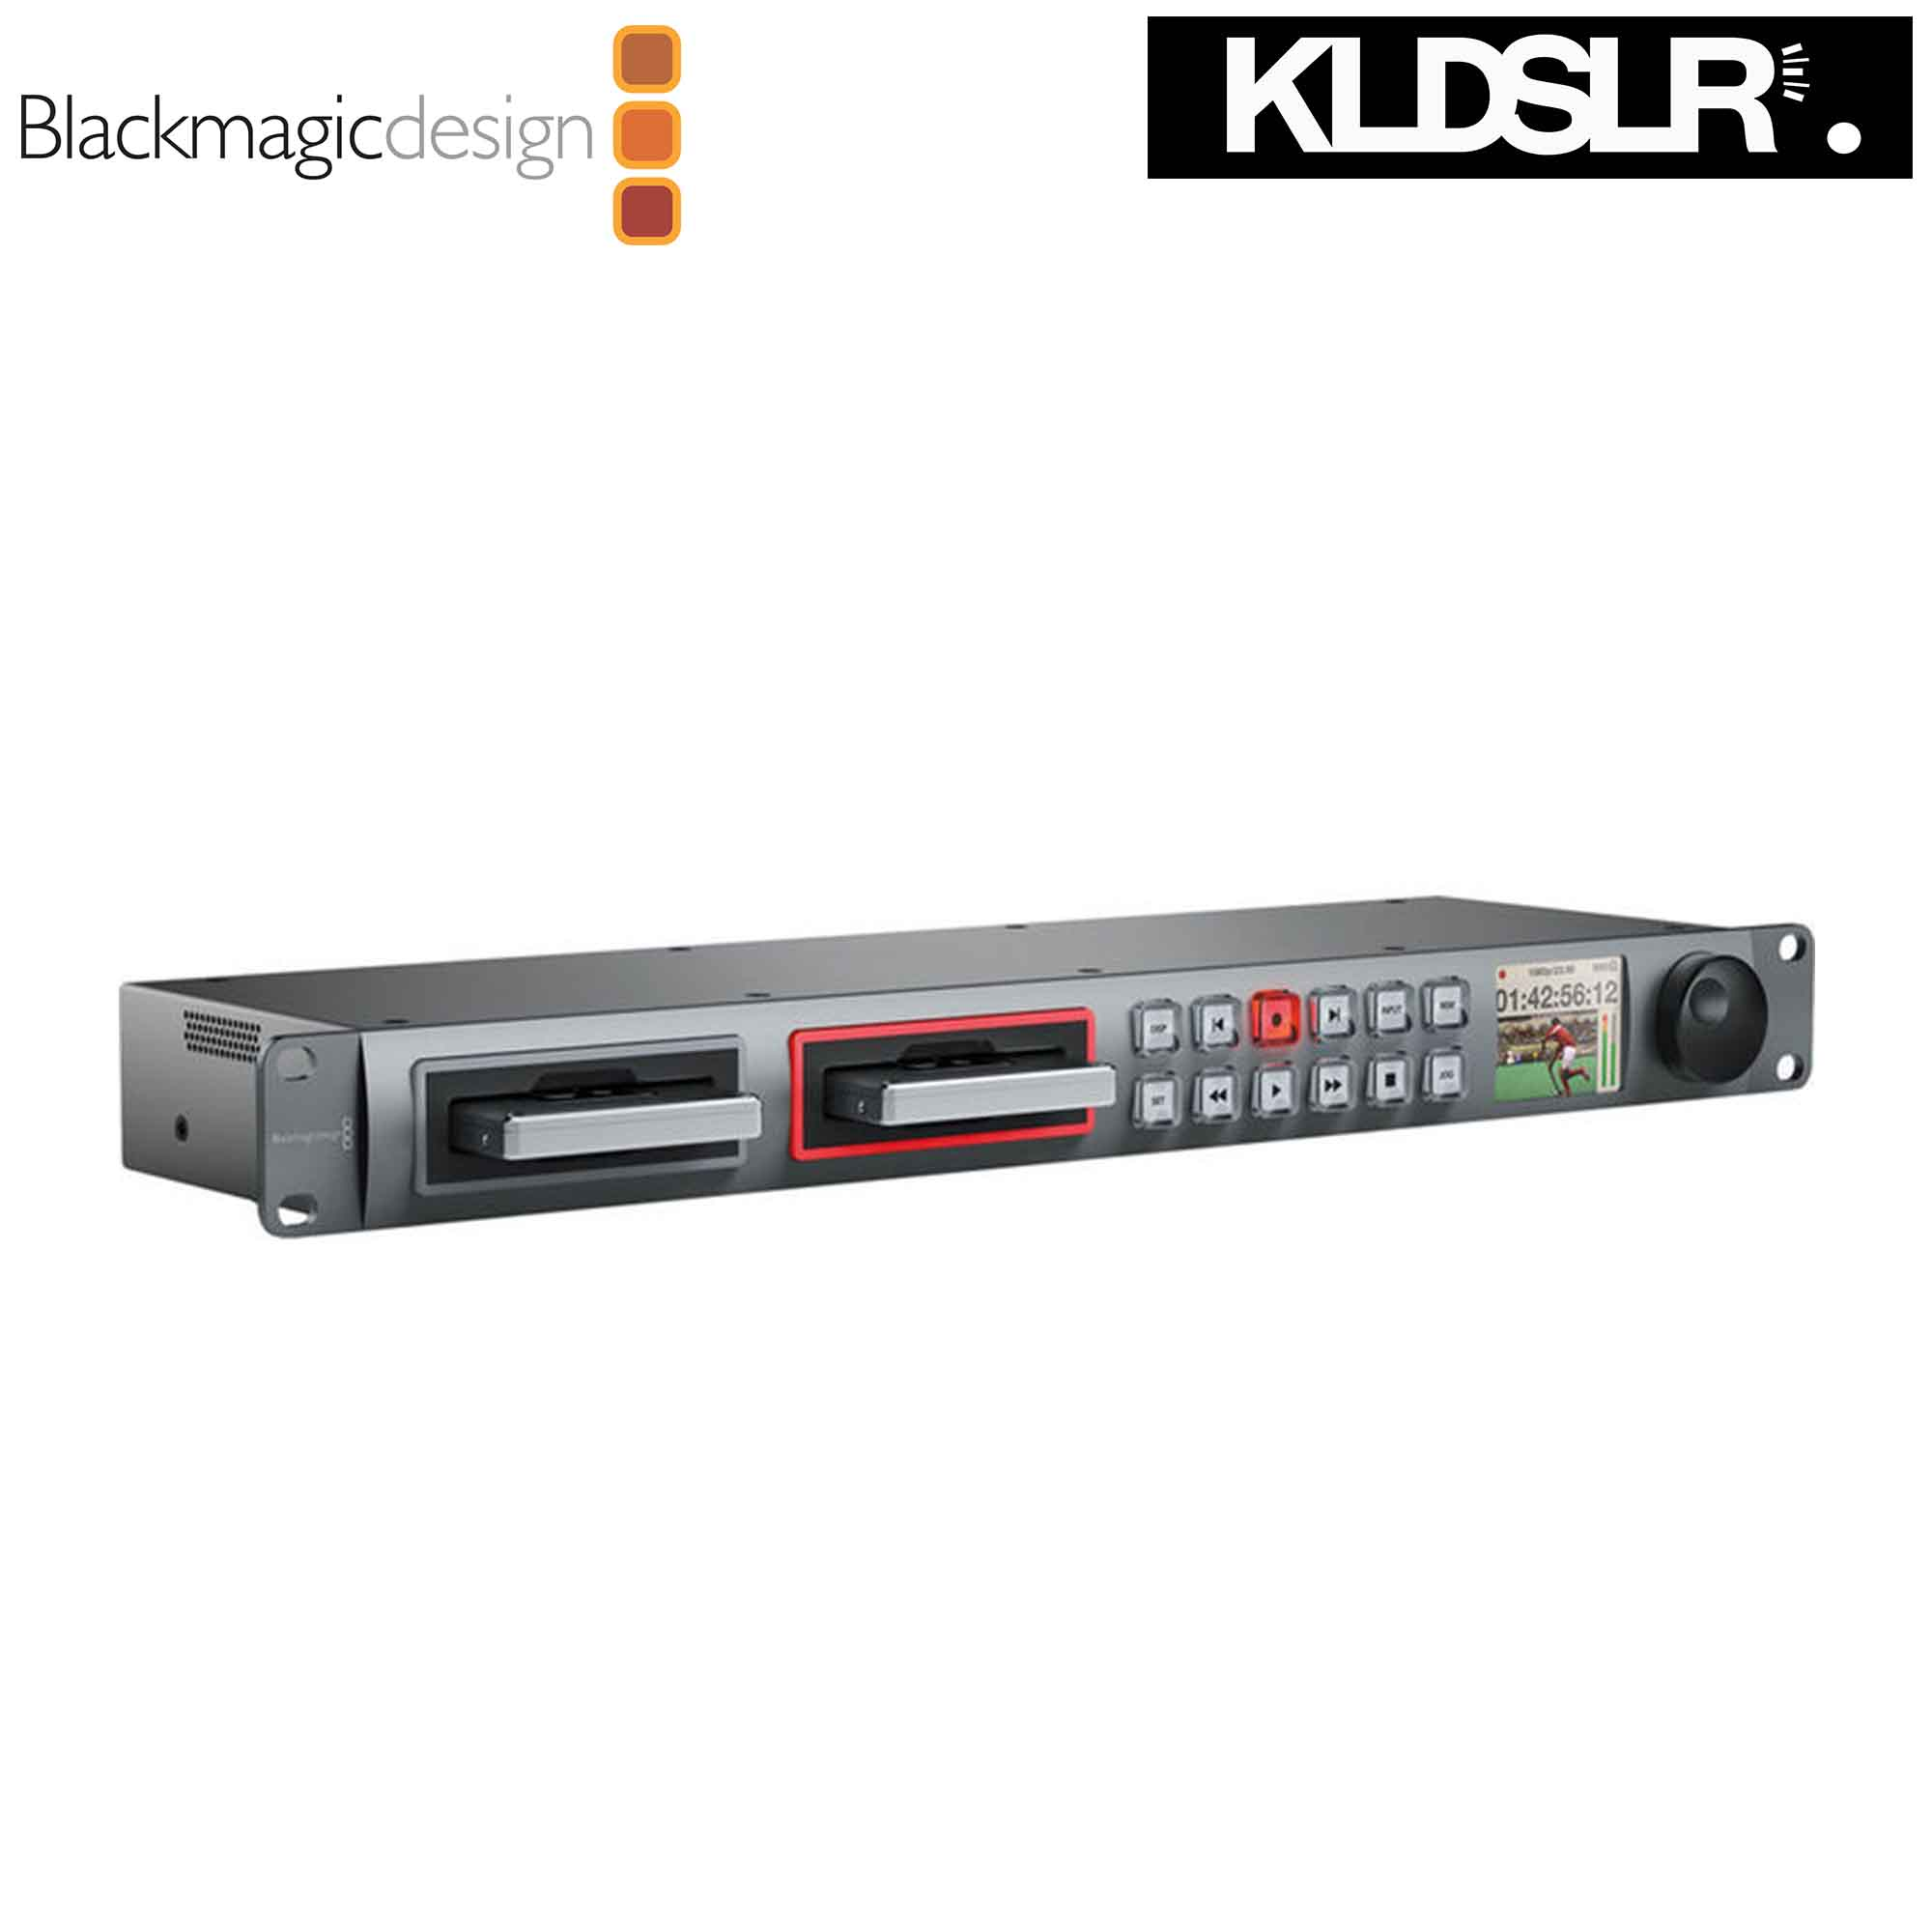 Blackmagic Design HyperDeck Studio 2 (Blackmagic Malaysia)